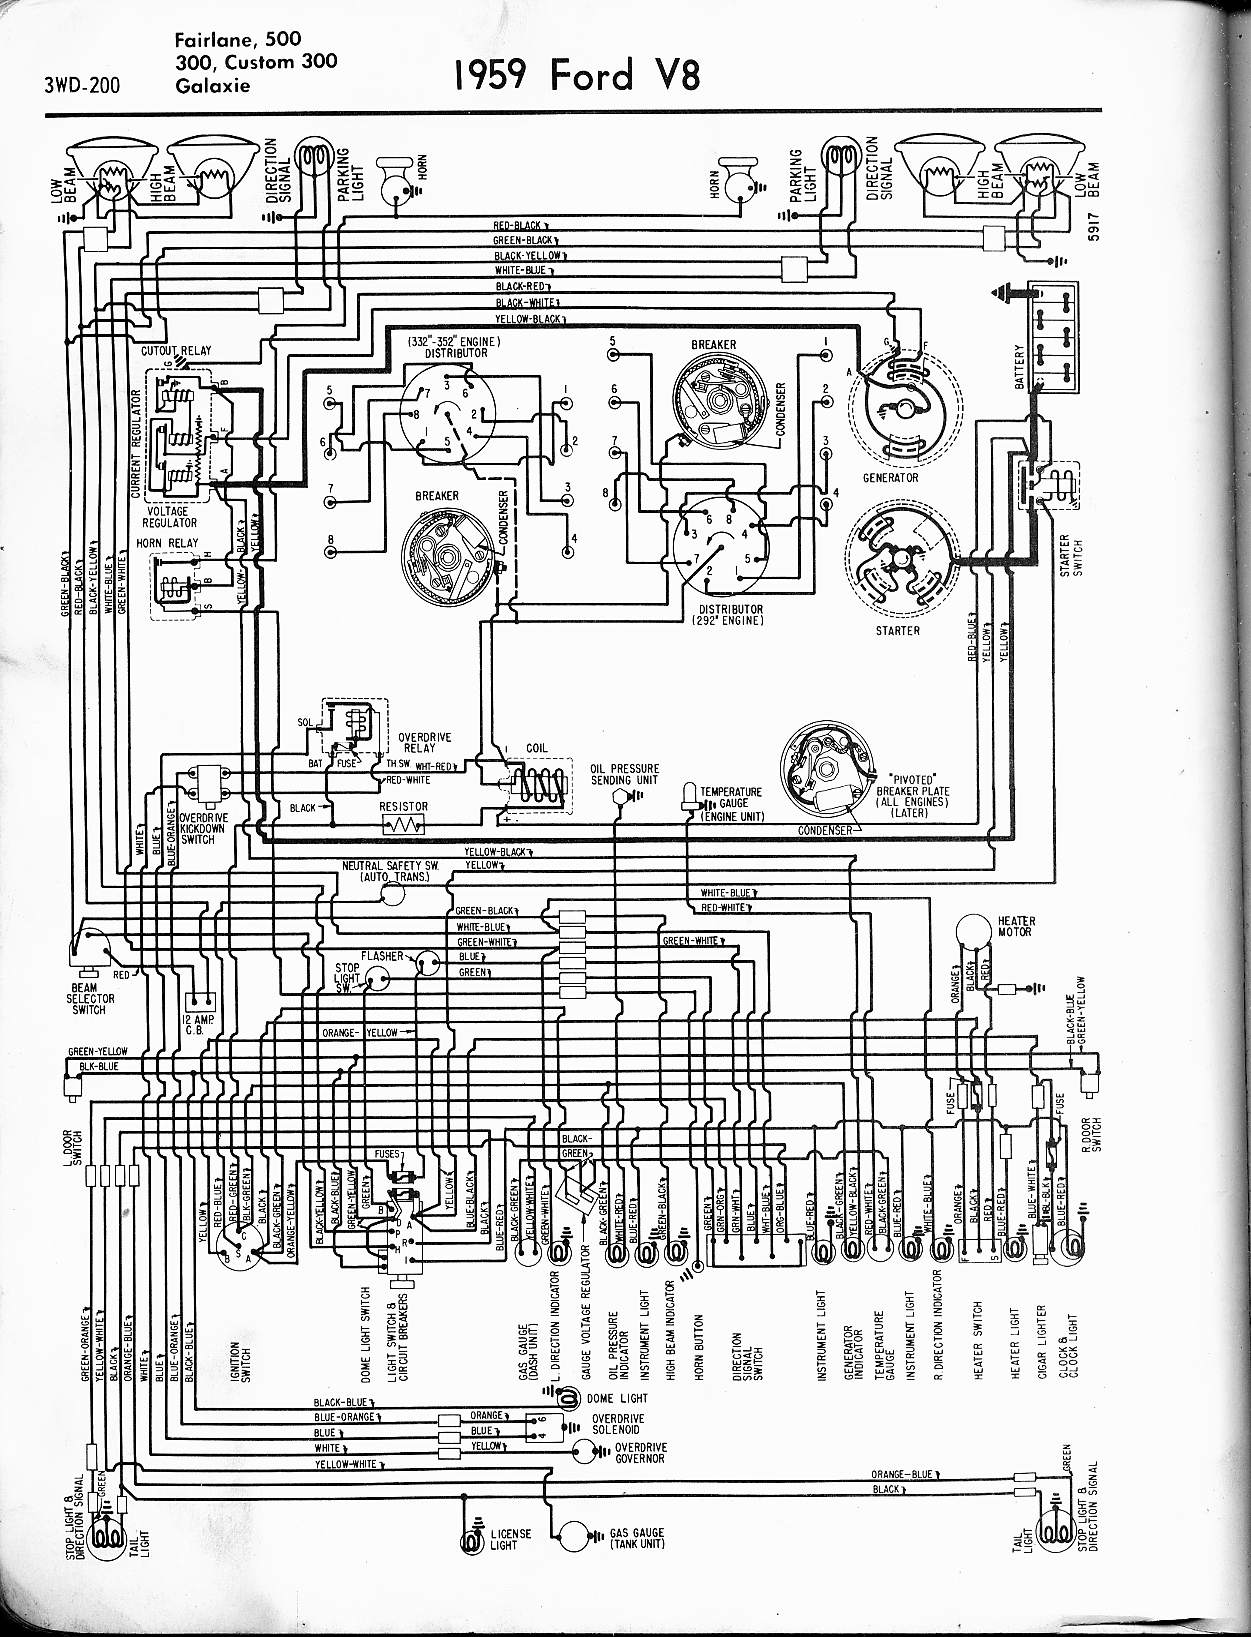 57 65 ford wiring diagrams 1955 Ford Thunderbird Wiring Diagram 1959 v8 fairlane, 500, 300, custom 300